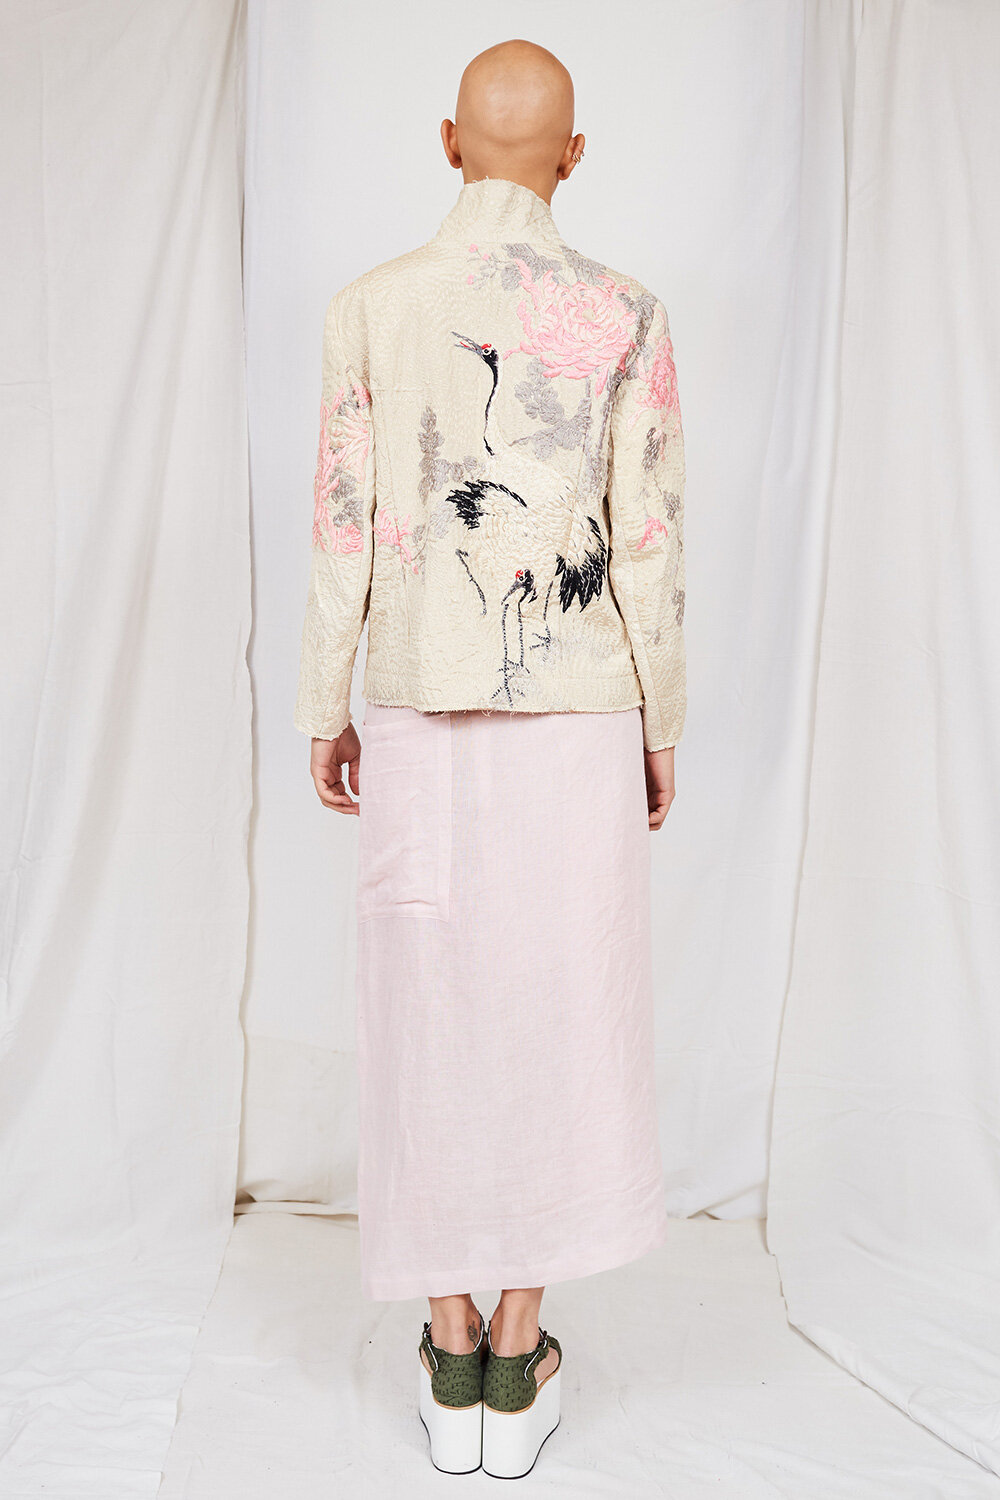 By Walid Womenswear Bird Embroidered Jacket SS20